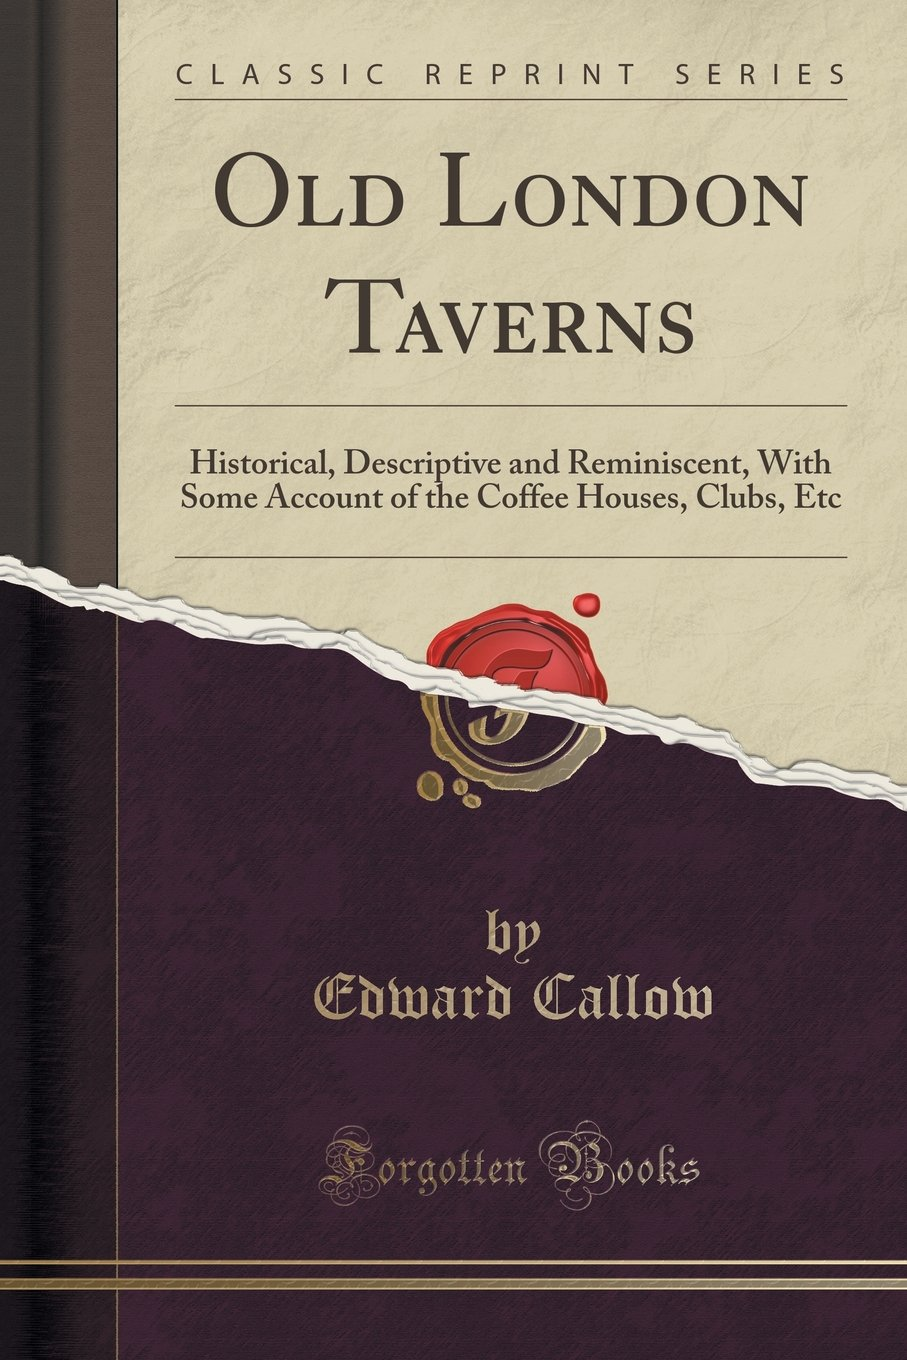 Old London Taverns: Historical, Descriptive and Reminiscent, With Some Account of the Coffee Houses, Clubs, Etc (Classic Reprint) PDF